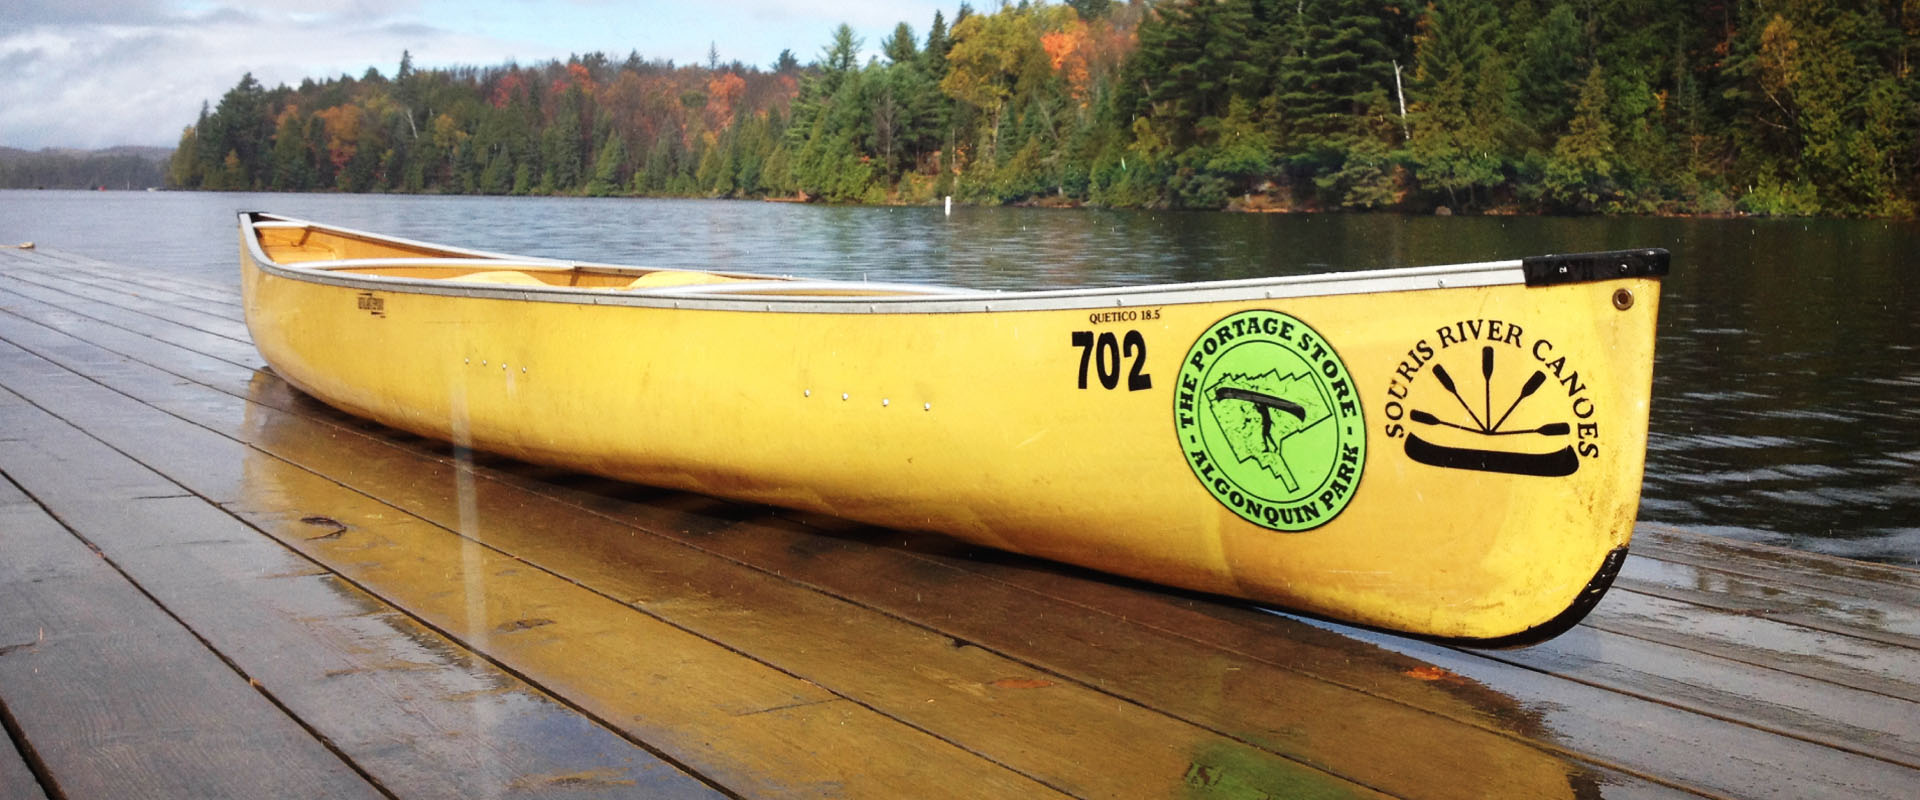 2019 Used Canoe Sale - The Portage Store — In Algonquin Park